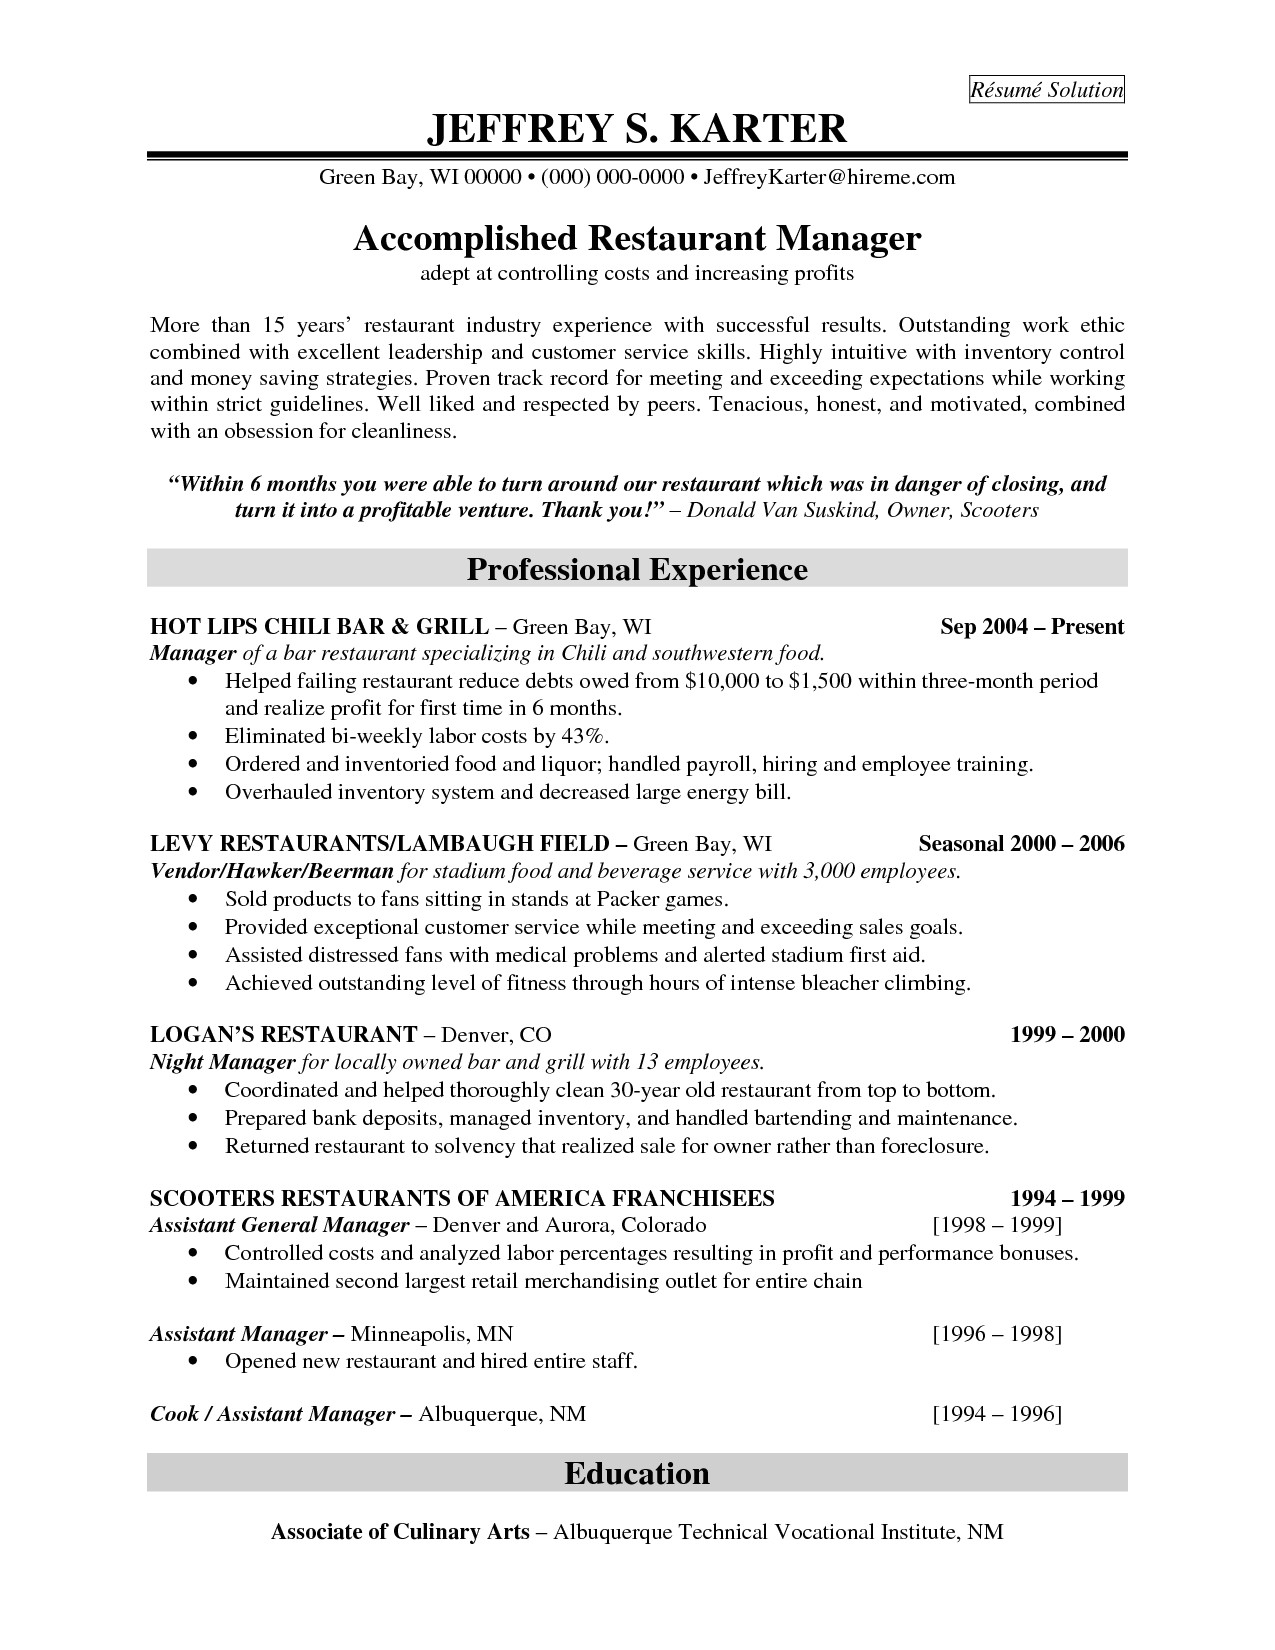 resume templates for restaurant managers